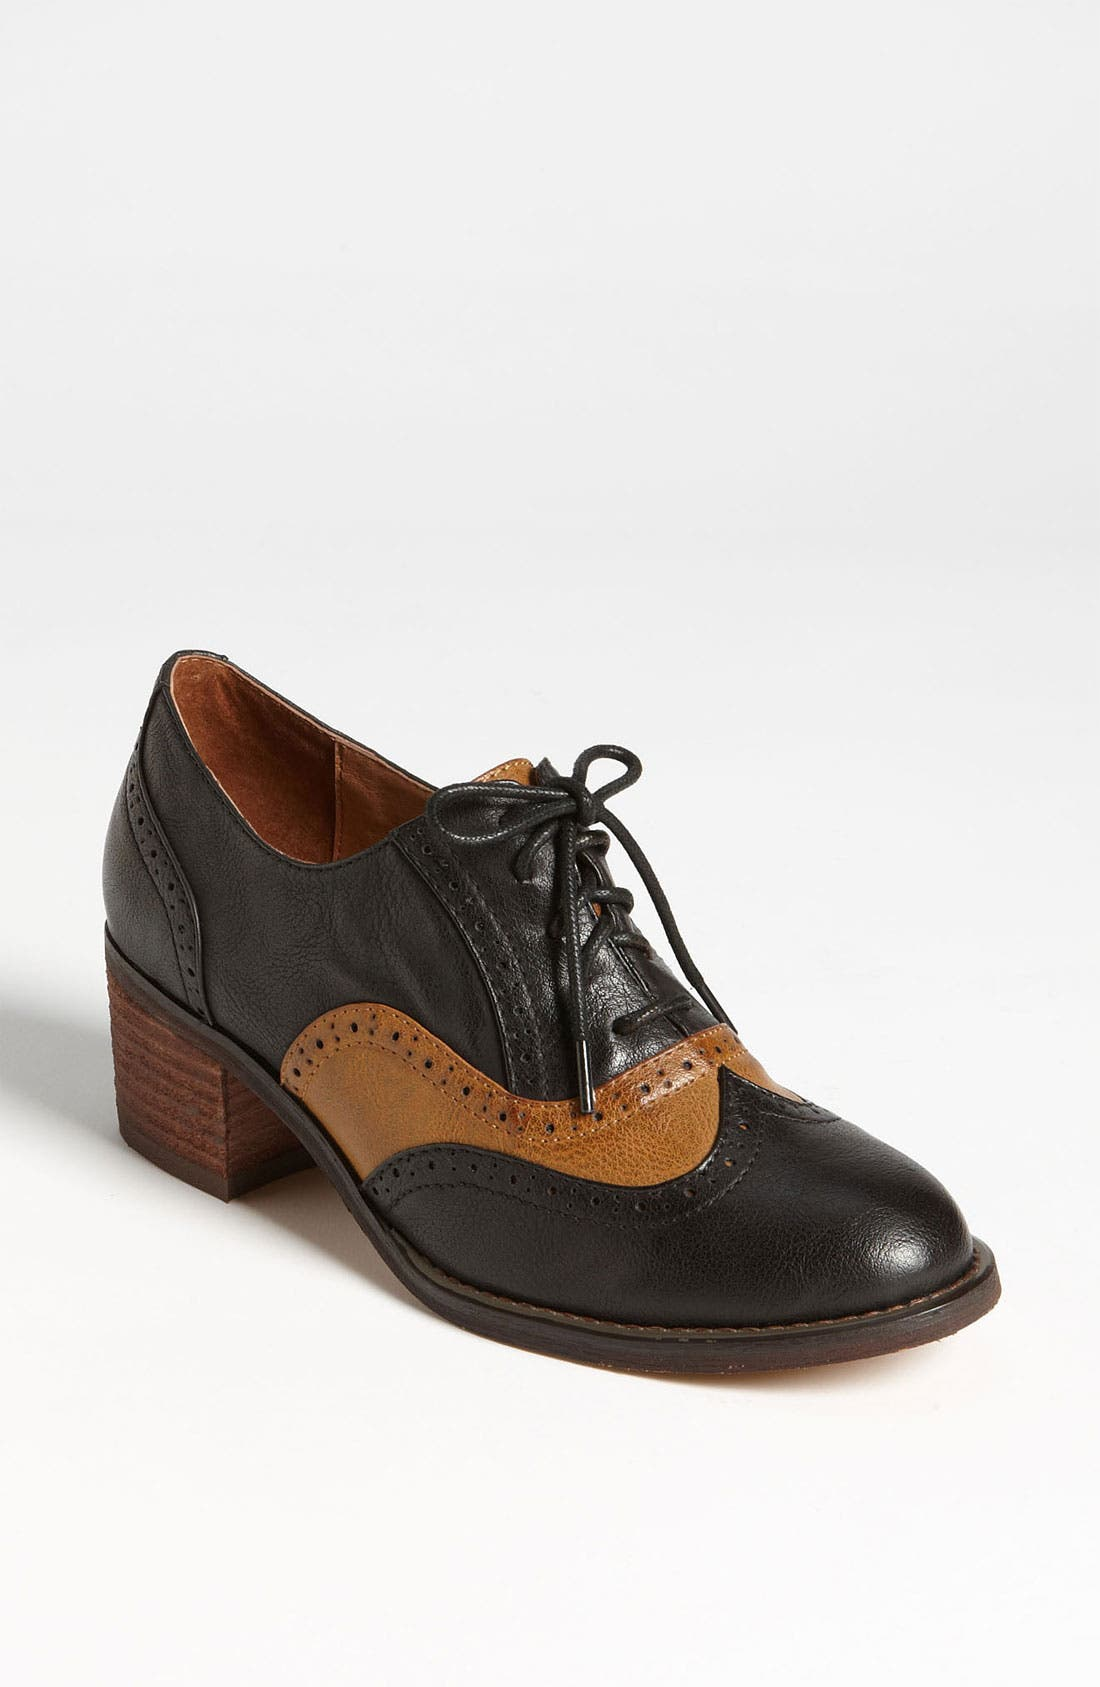 JEFFREY CAMPBELL 'Williams' Oxford, Main, color, 002